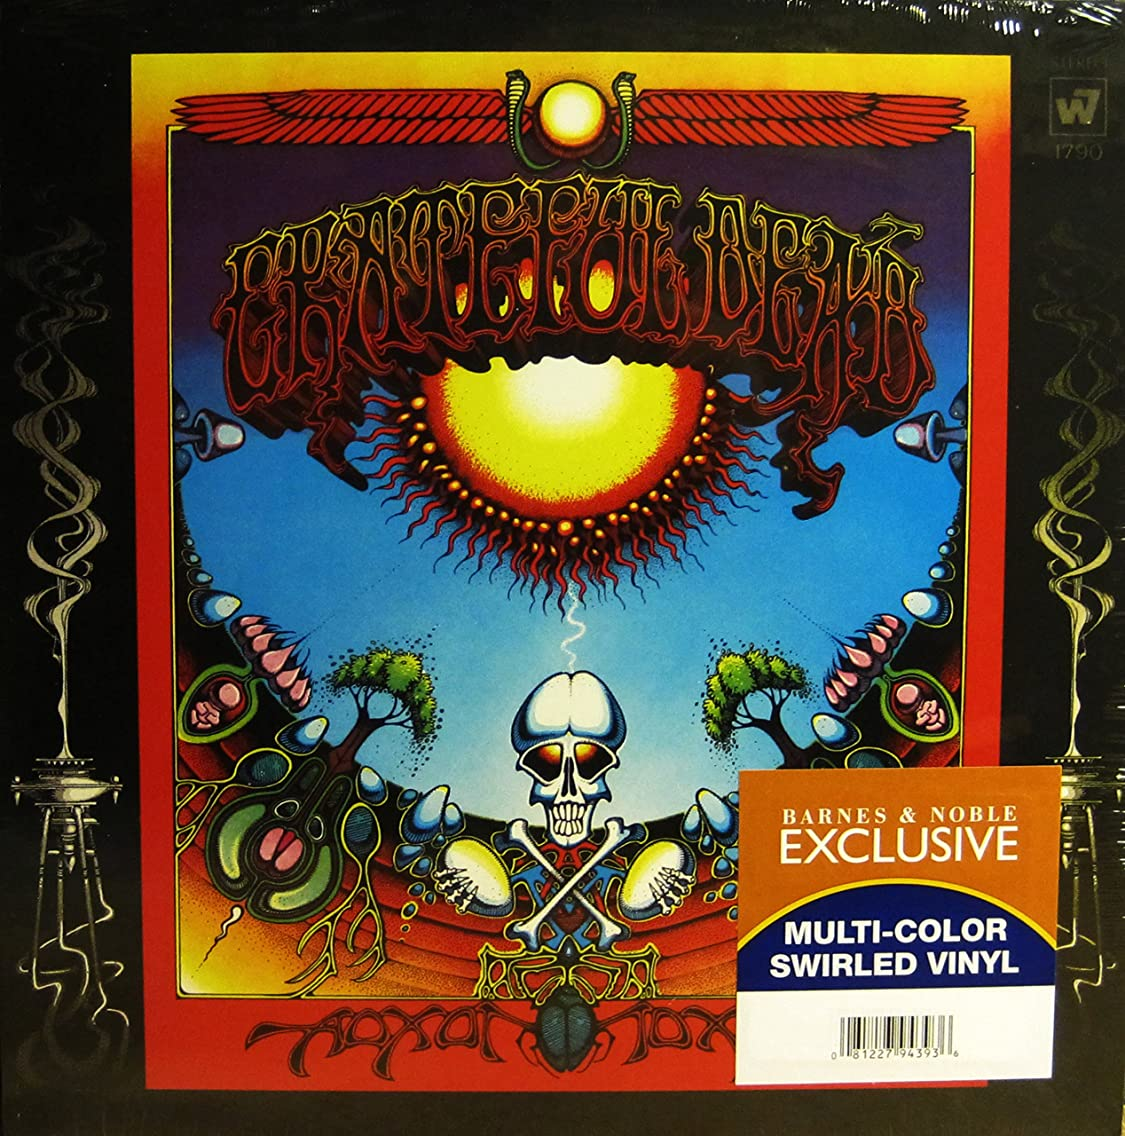 Aoxomoxoa Exclusive Multi-Color Swirled Vinyl